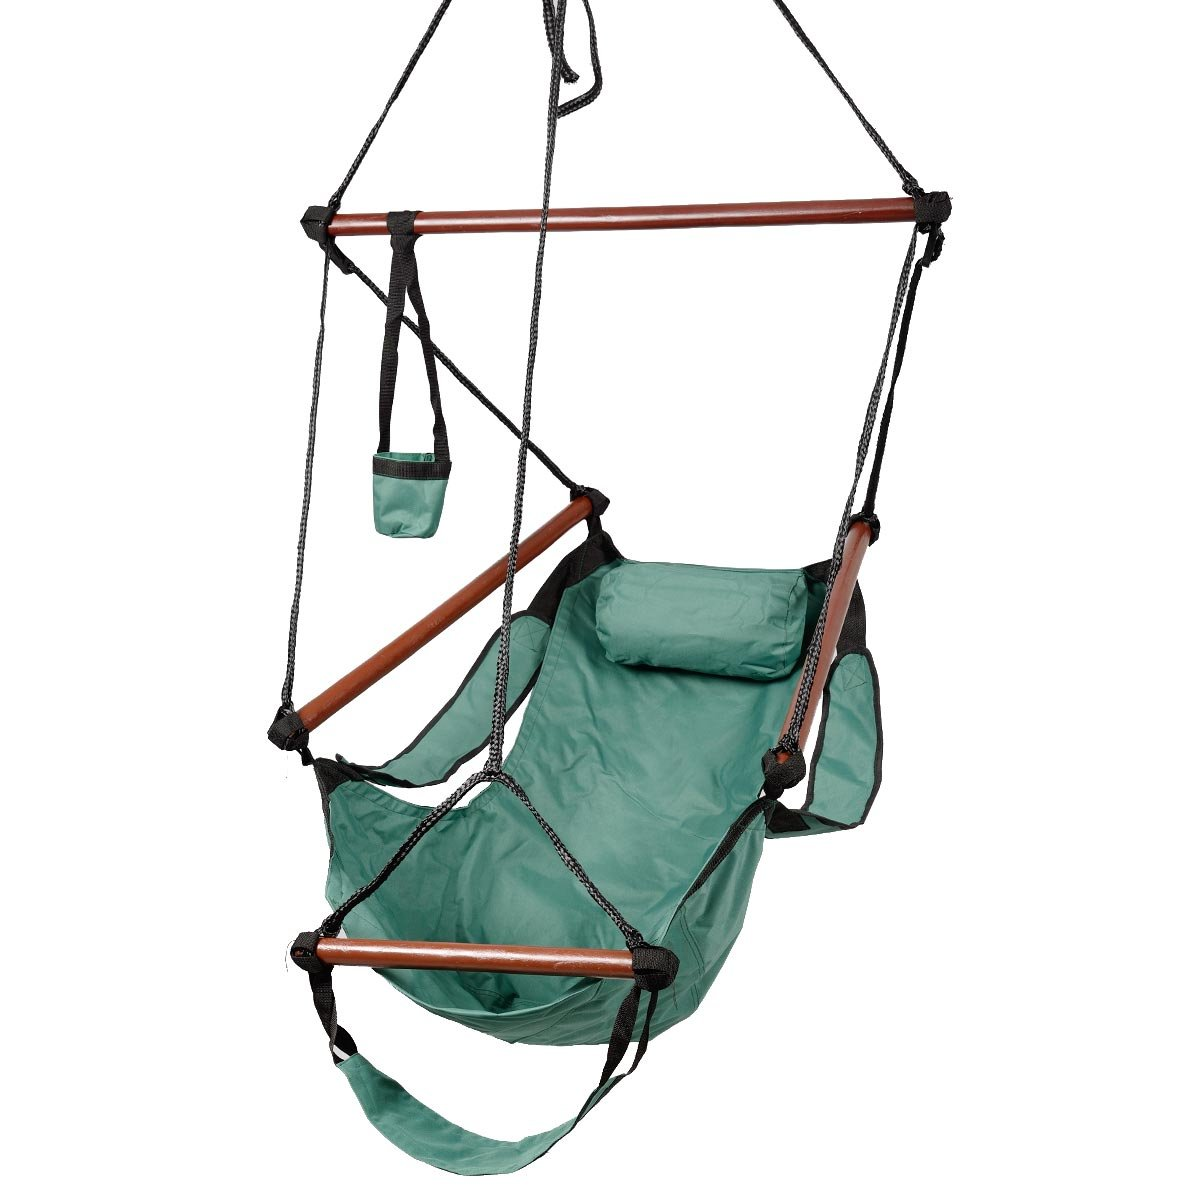 children kids ga chairs original hanging nook terrific tent invigorating lots hammock seat indoor cheap chair from ideas forbedroom swing ceiling outdoorchild smart pod